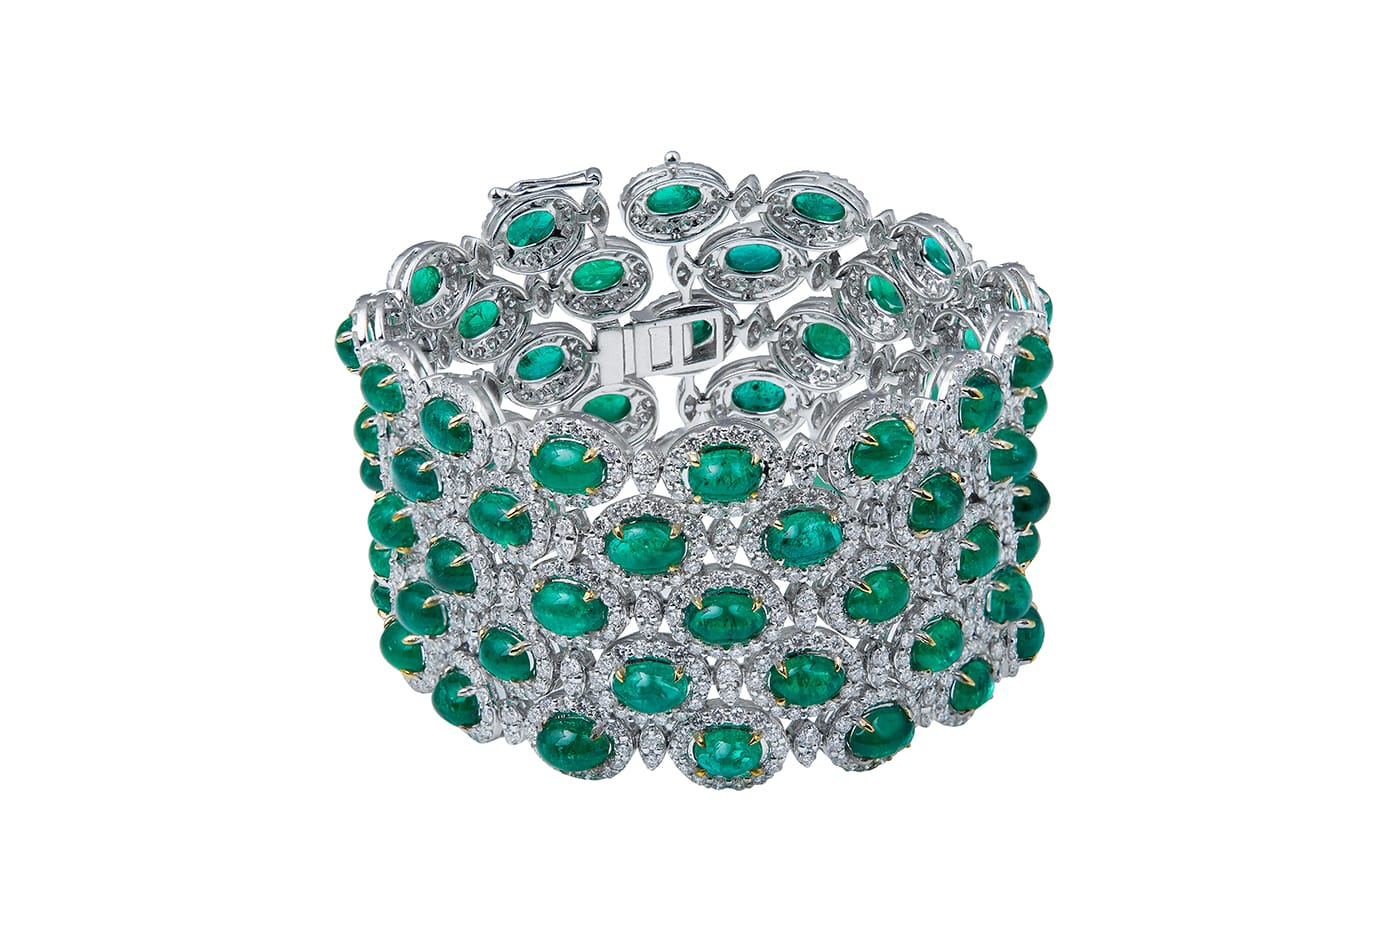 Zambian Emerald Diamond Bracelet